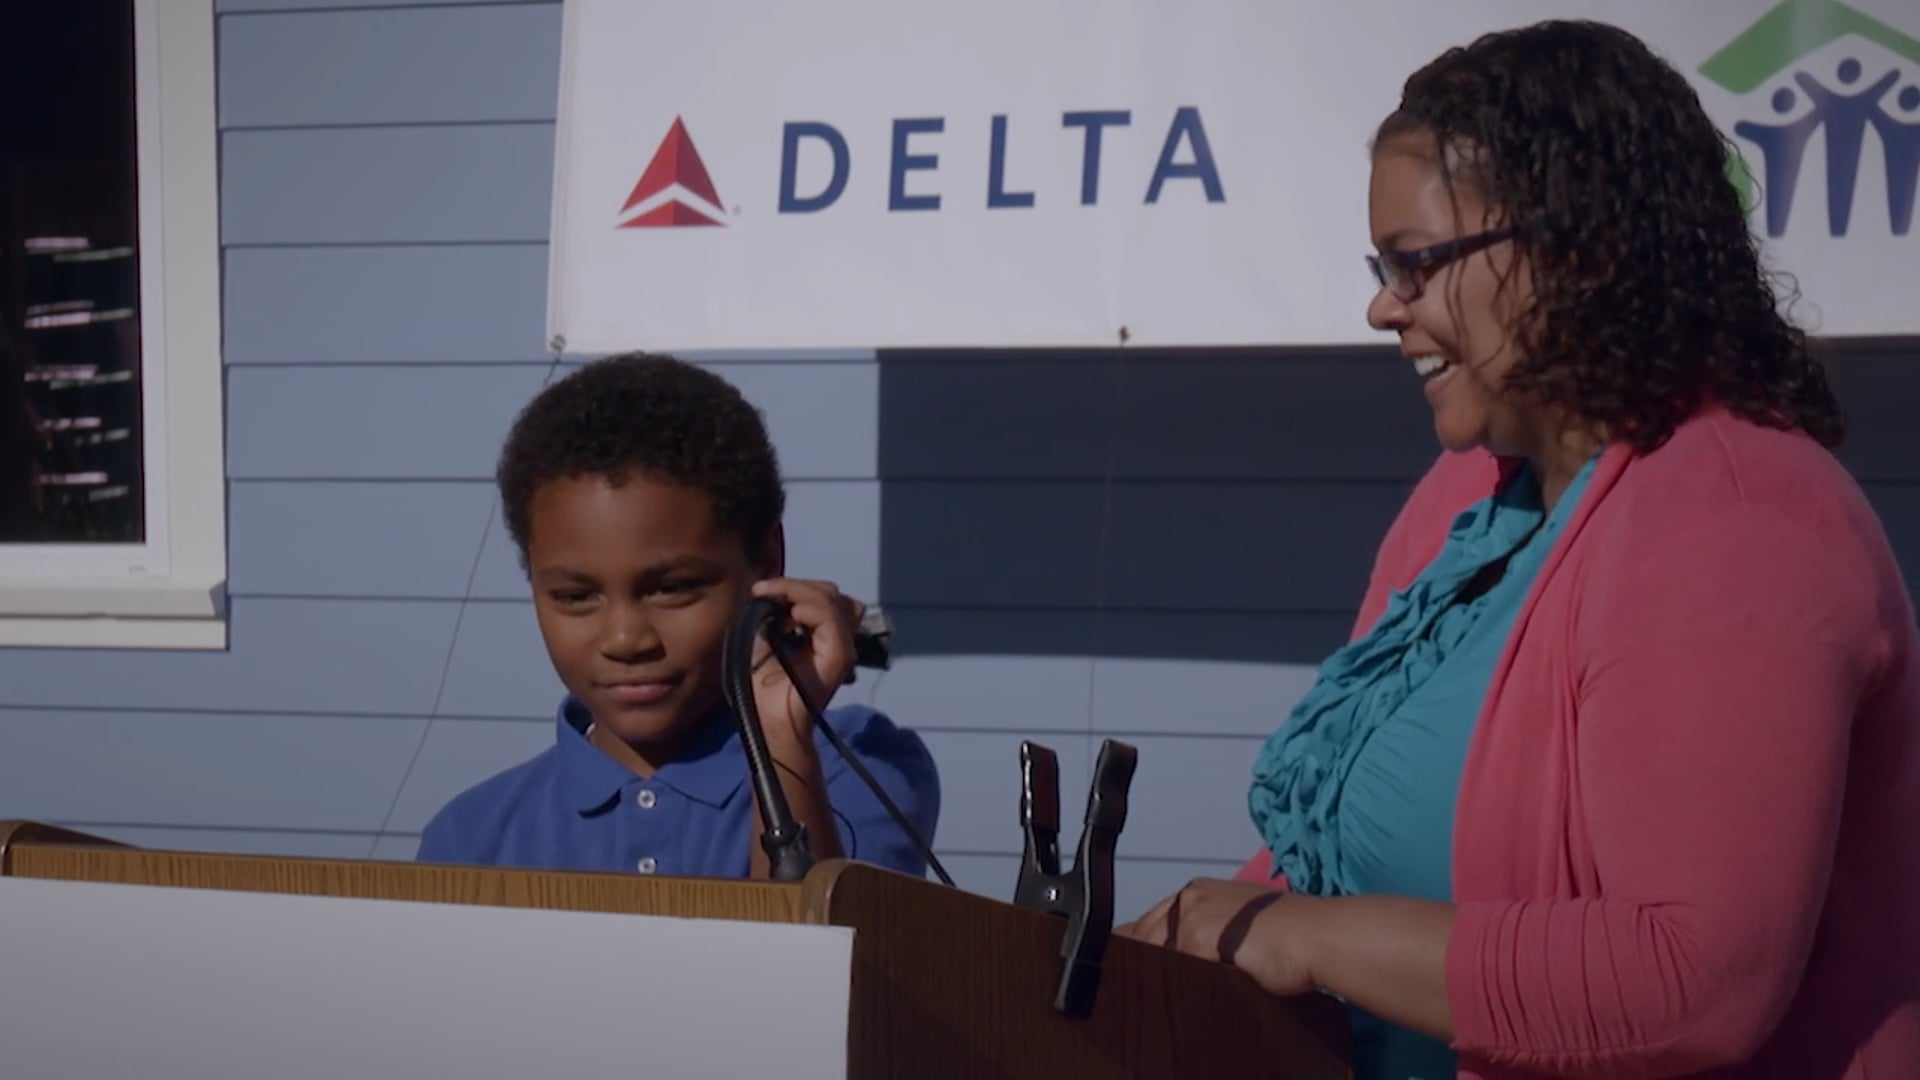 Delta Air Lines - Seattle Veterans Habitat Build (2016) - Directed by Jose A. Acosta for Heards Creek.